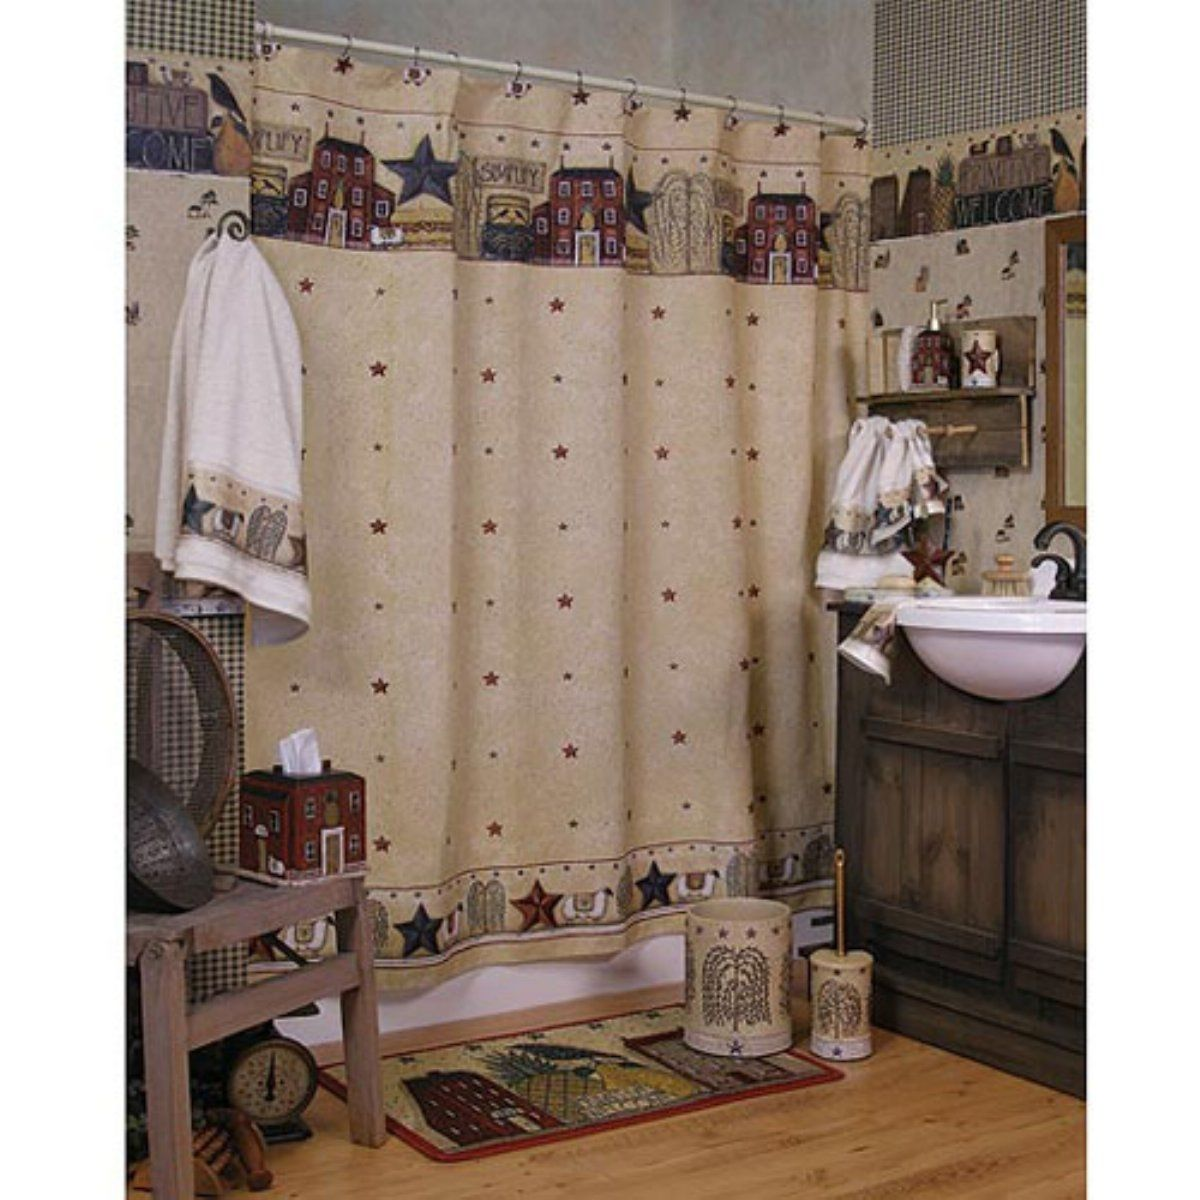 Shower Curtain Size For Standard Tub | Shower Curtain | Pinterest ...